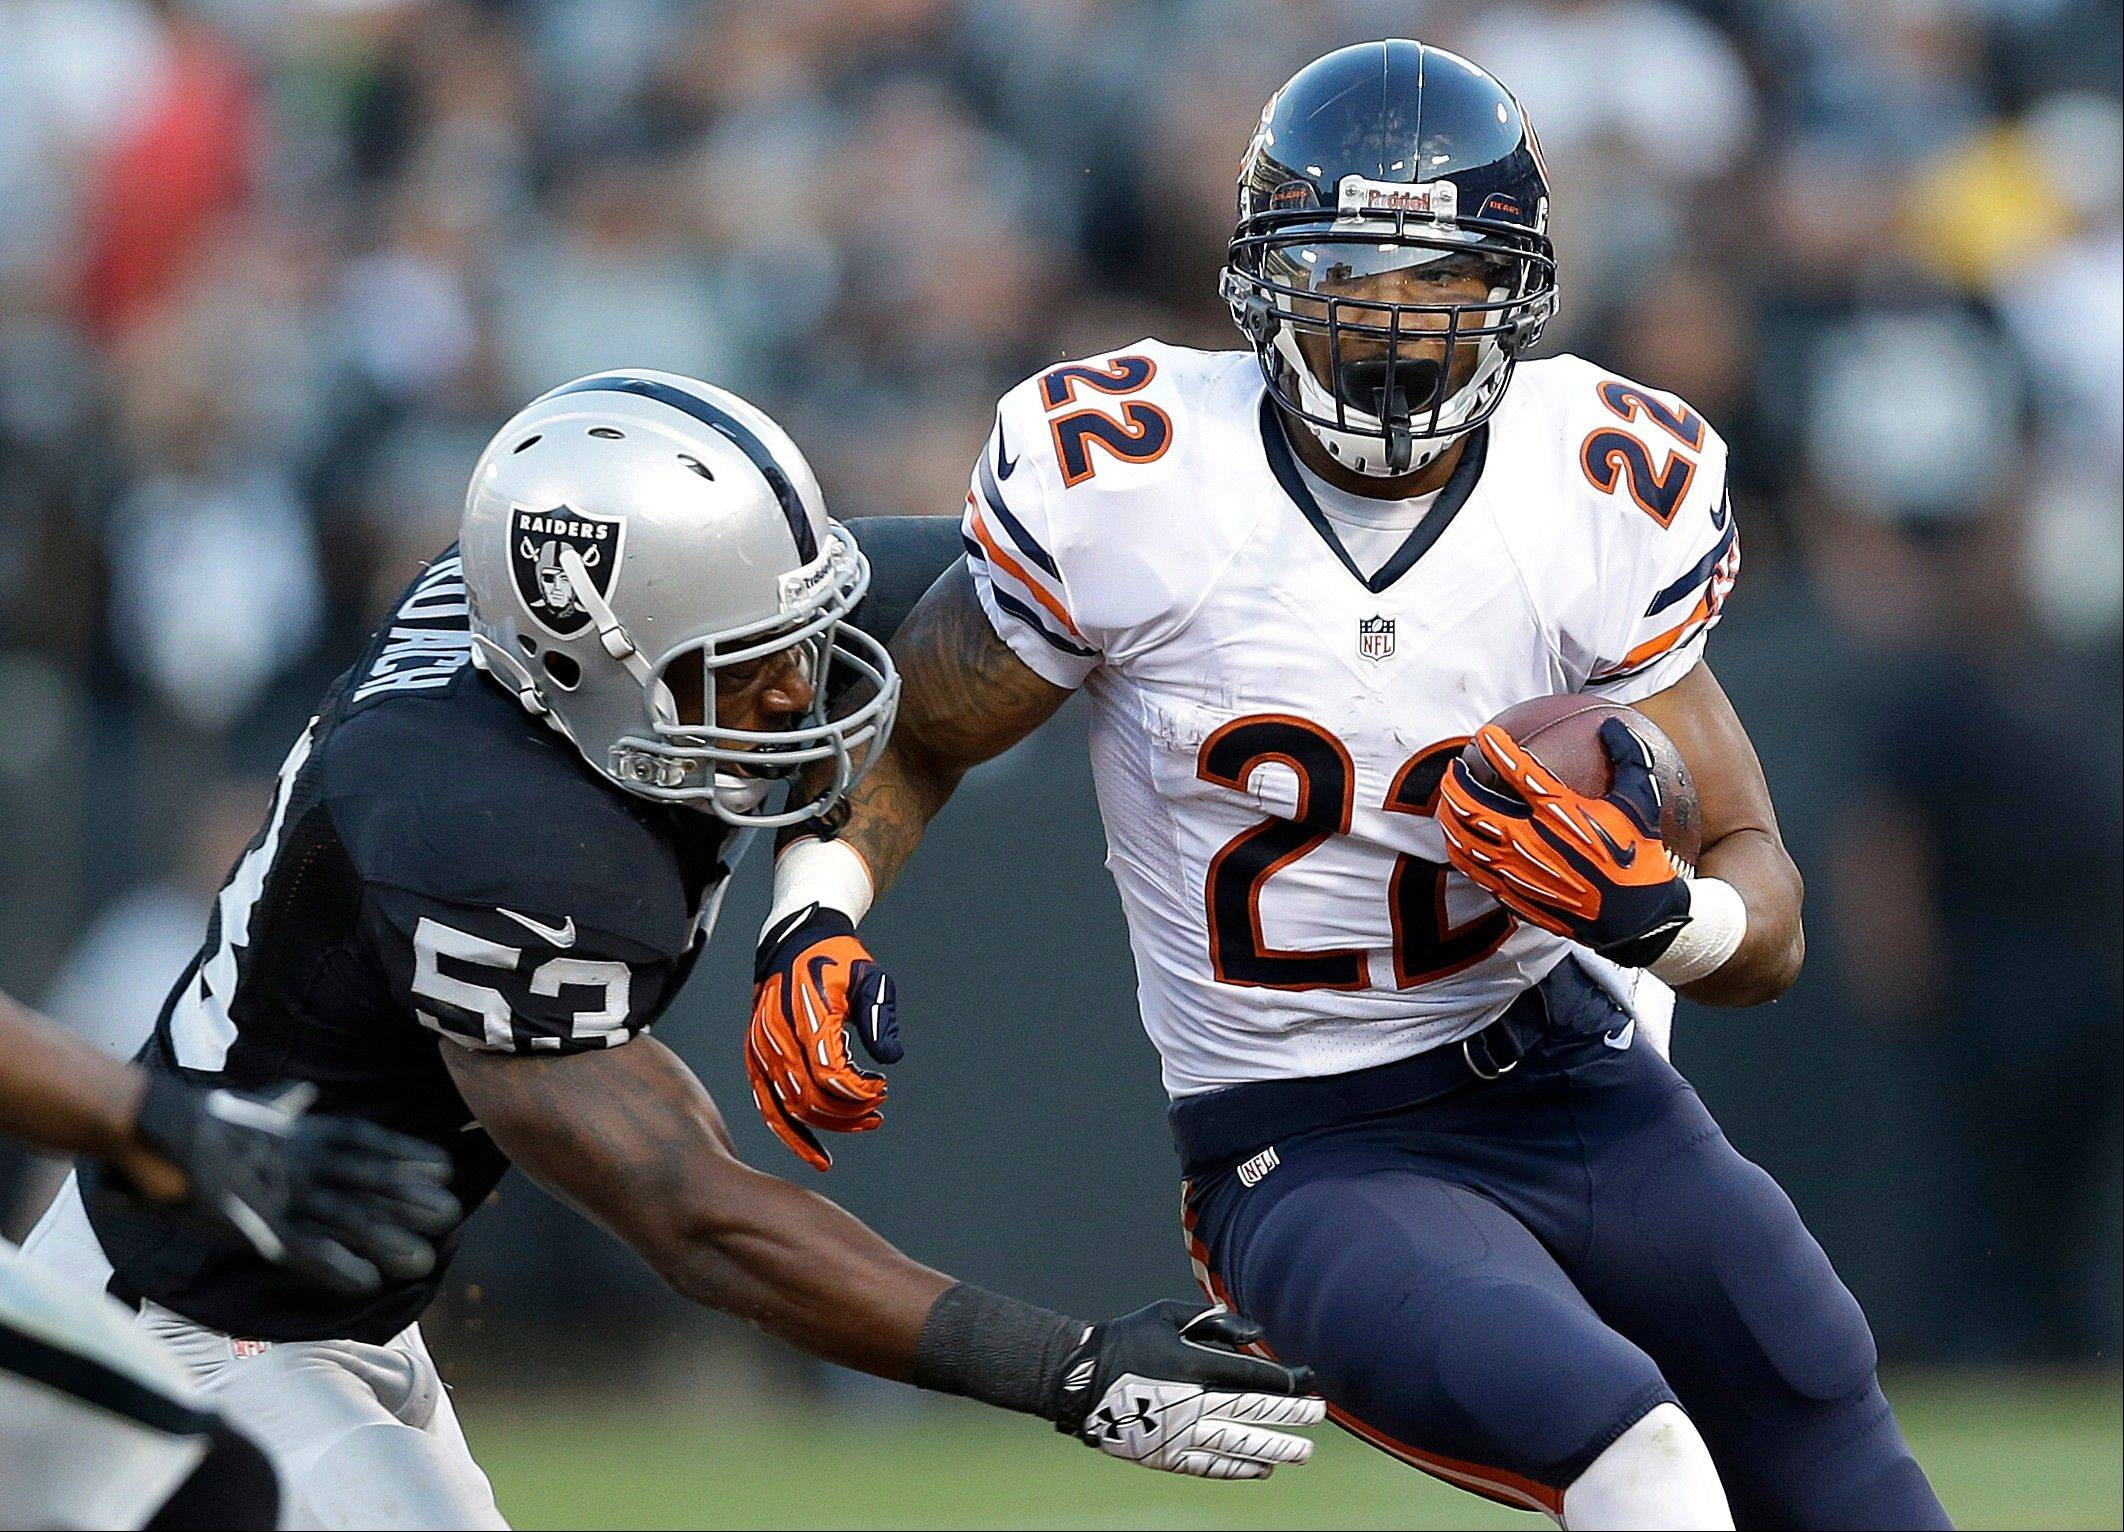 Chicago Bears running back Matt Forte (22) carries against Oakland Raiders linebacker Nick Roach (53) during the first quarter of an NFL preseason football game in Oakland, Calif., Friday, Aug. 23, 2013.